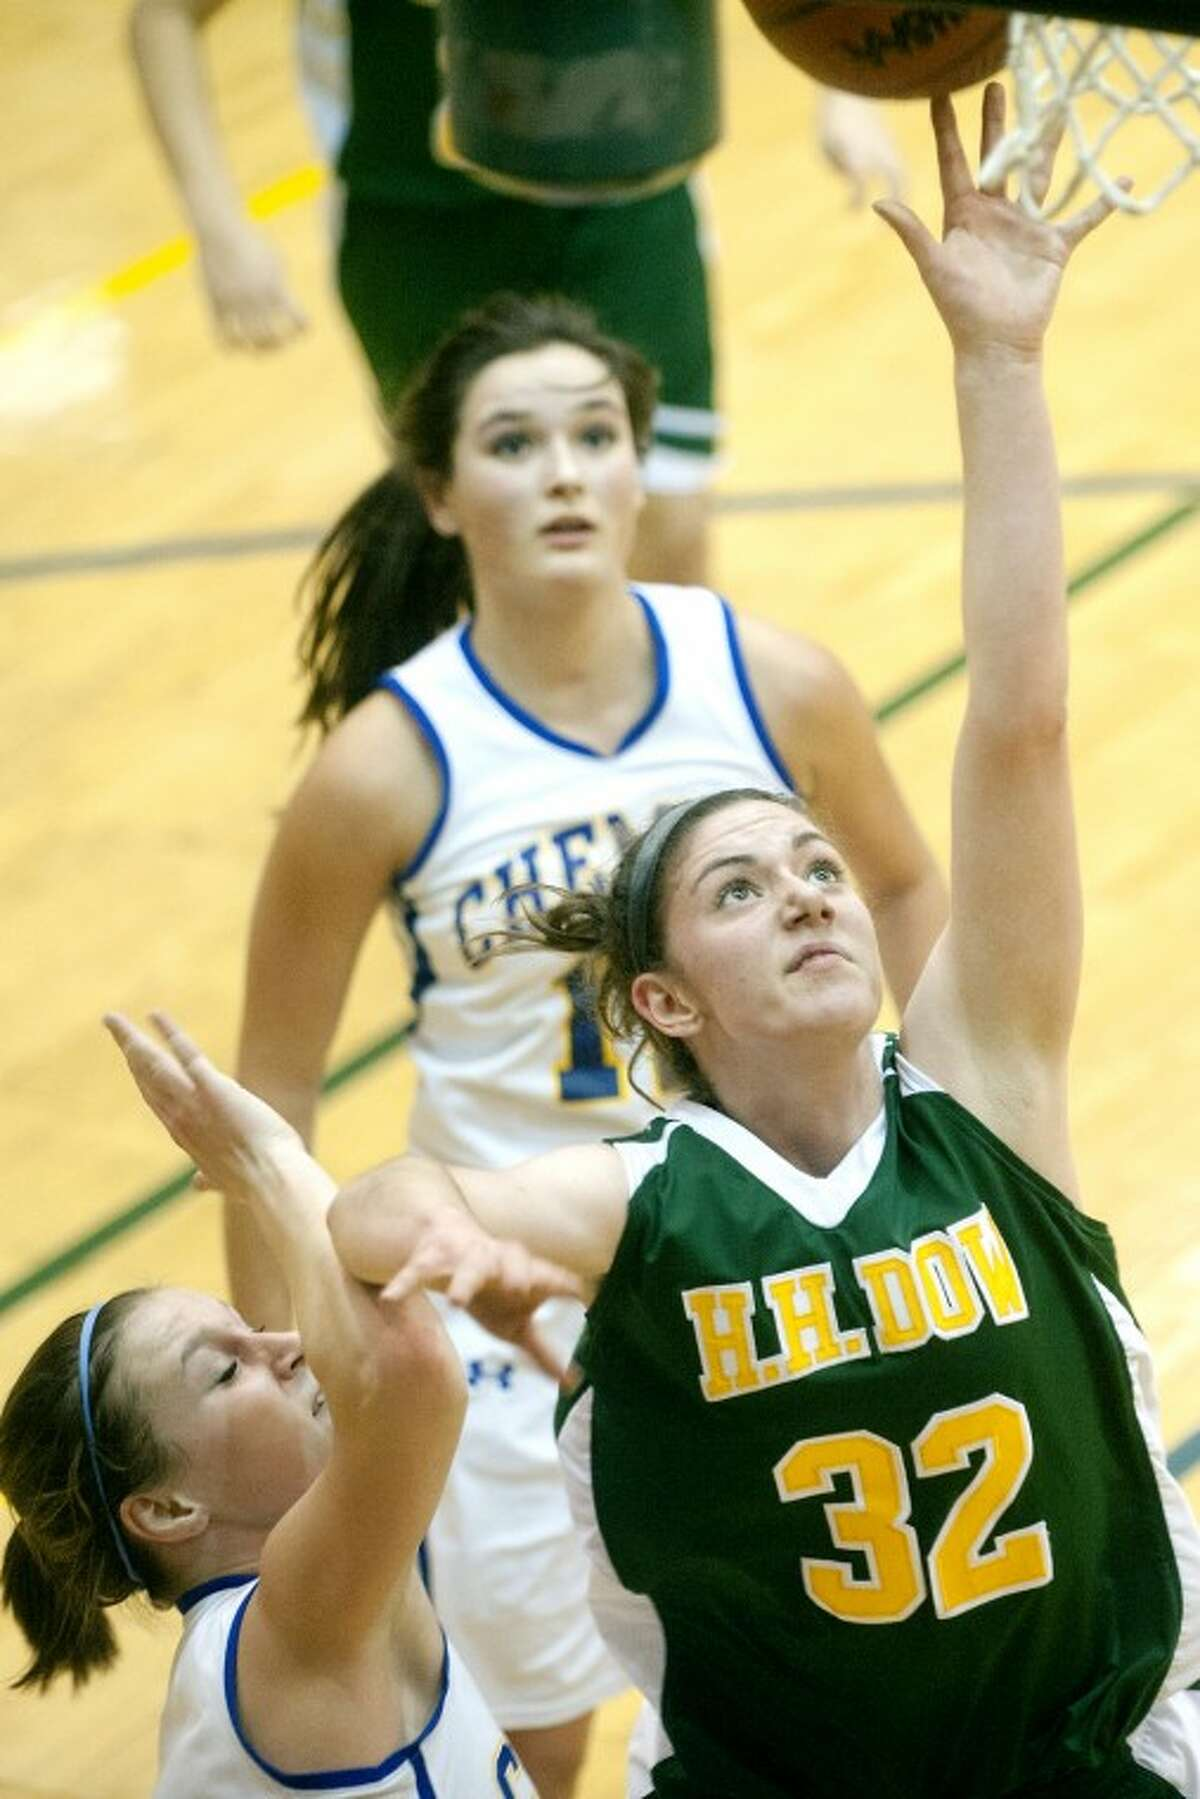 Dow's Josie Queary shoots while guarded by Midland's Jessica Walter, left, as Chemic Mikayla Russell, top, looks on in Wednesday's rivalry game at Midland.